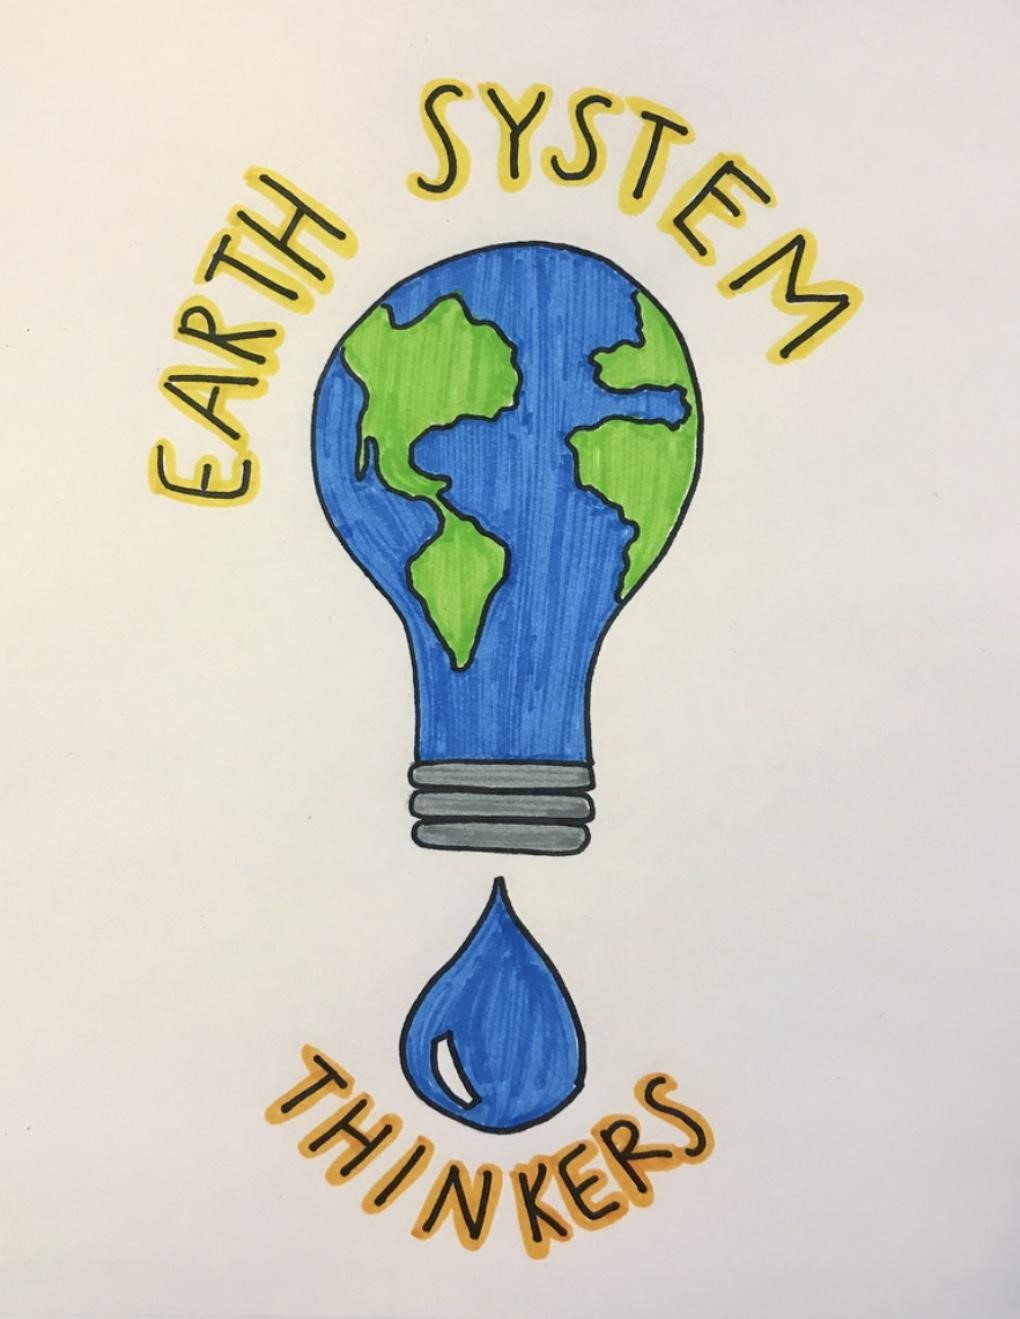 Earth Systems Thinkers artwork